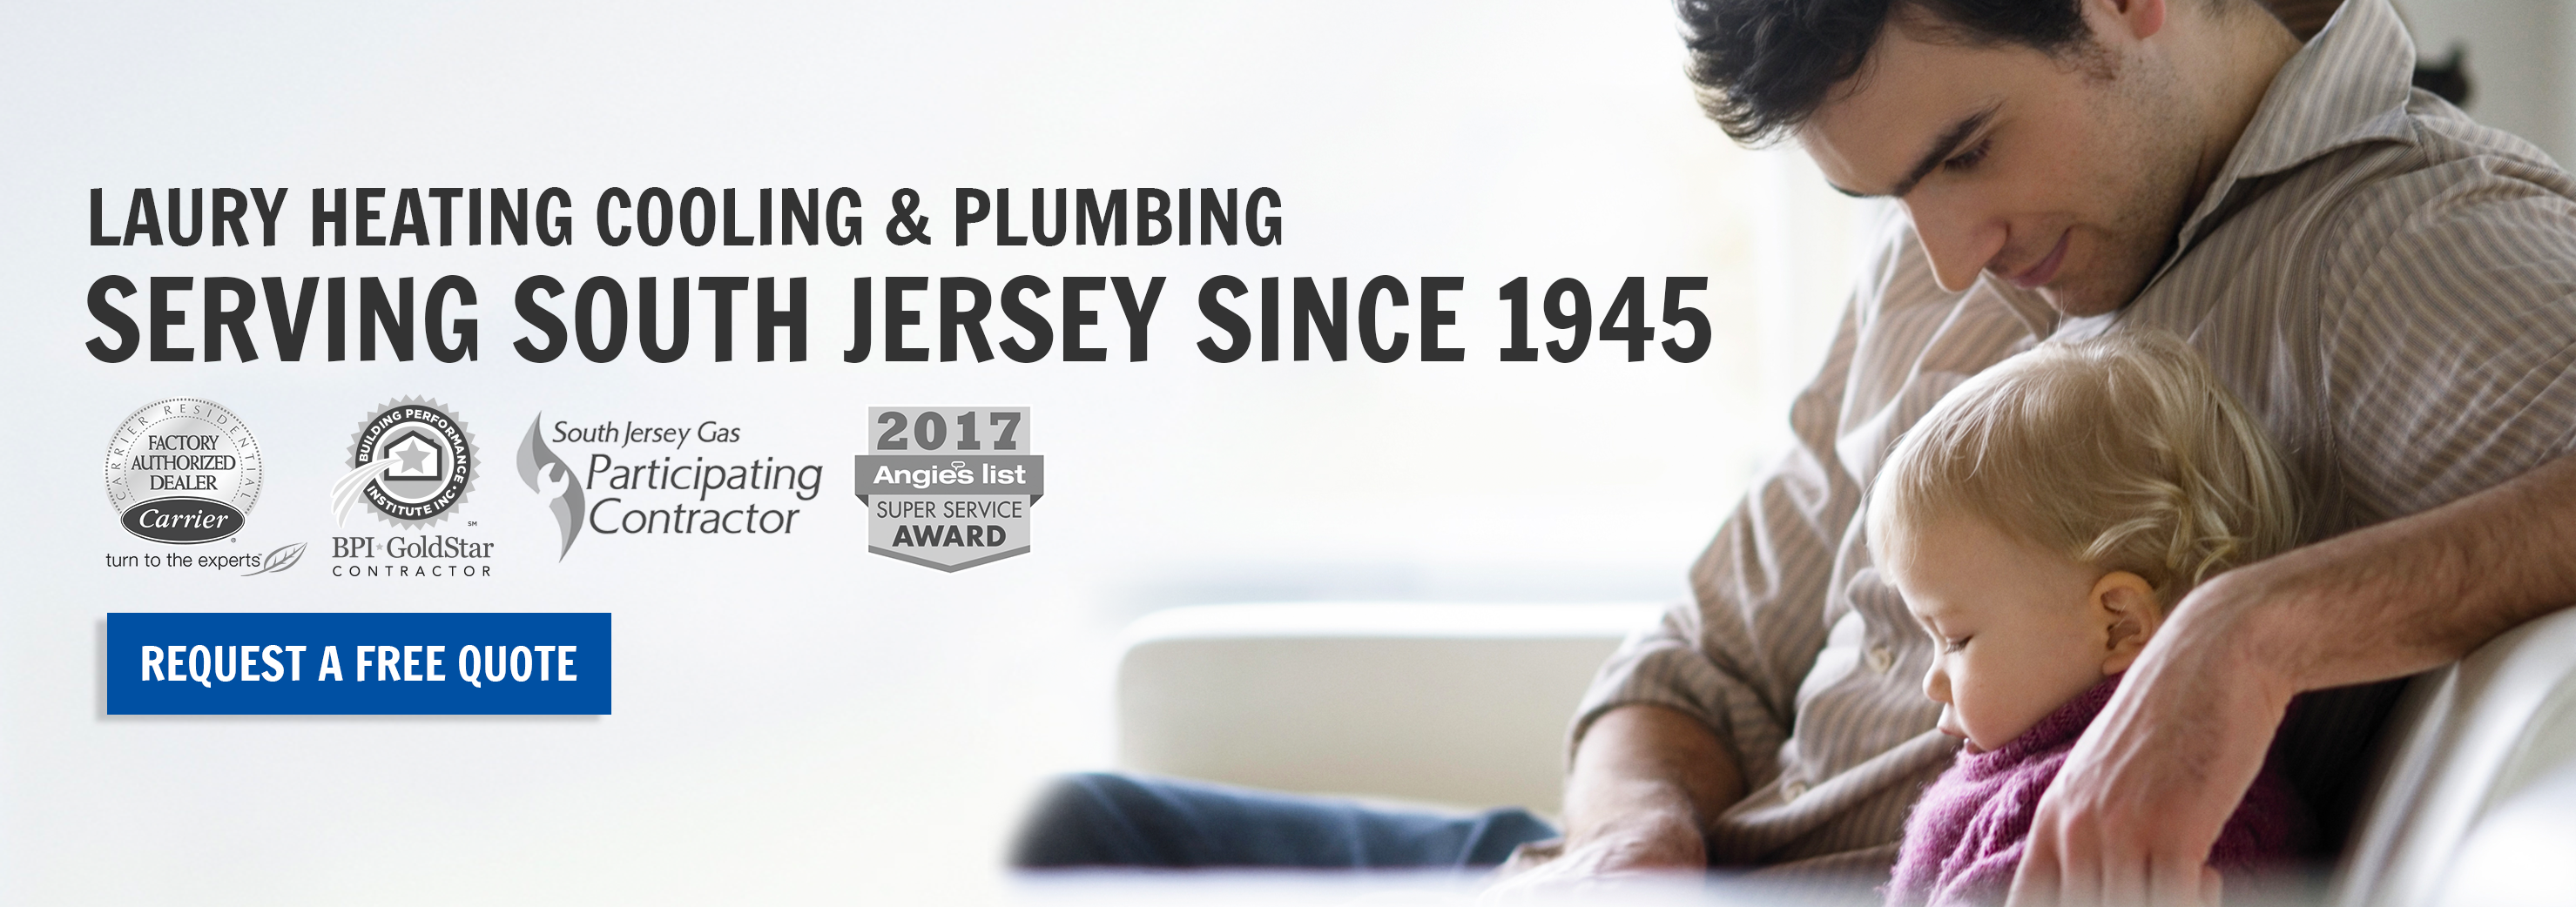 Laury Heating Cooling Plumbing South Jersey